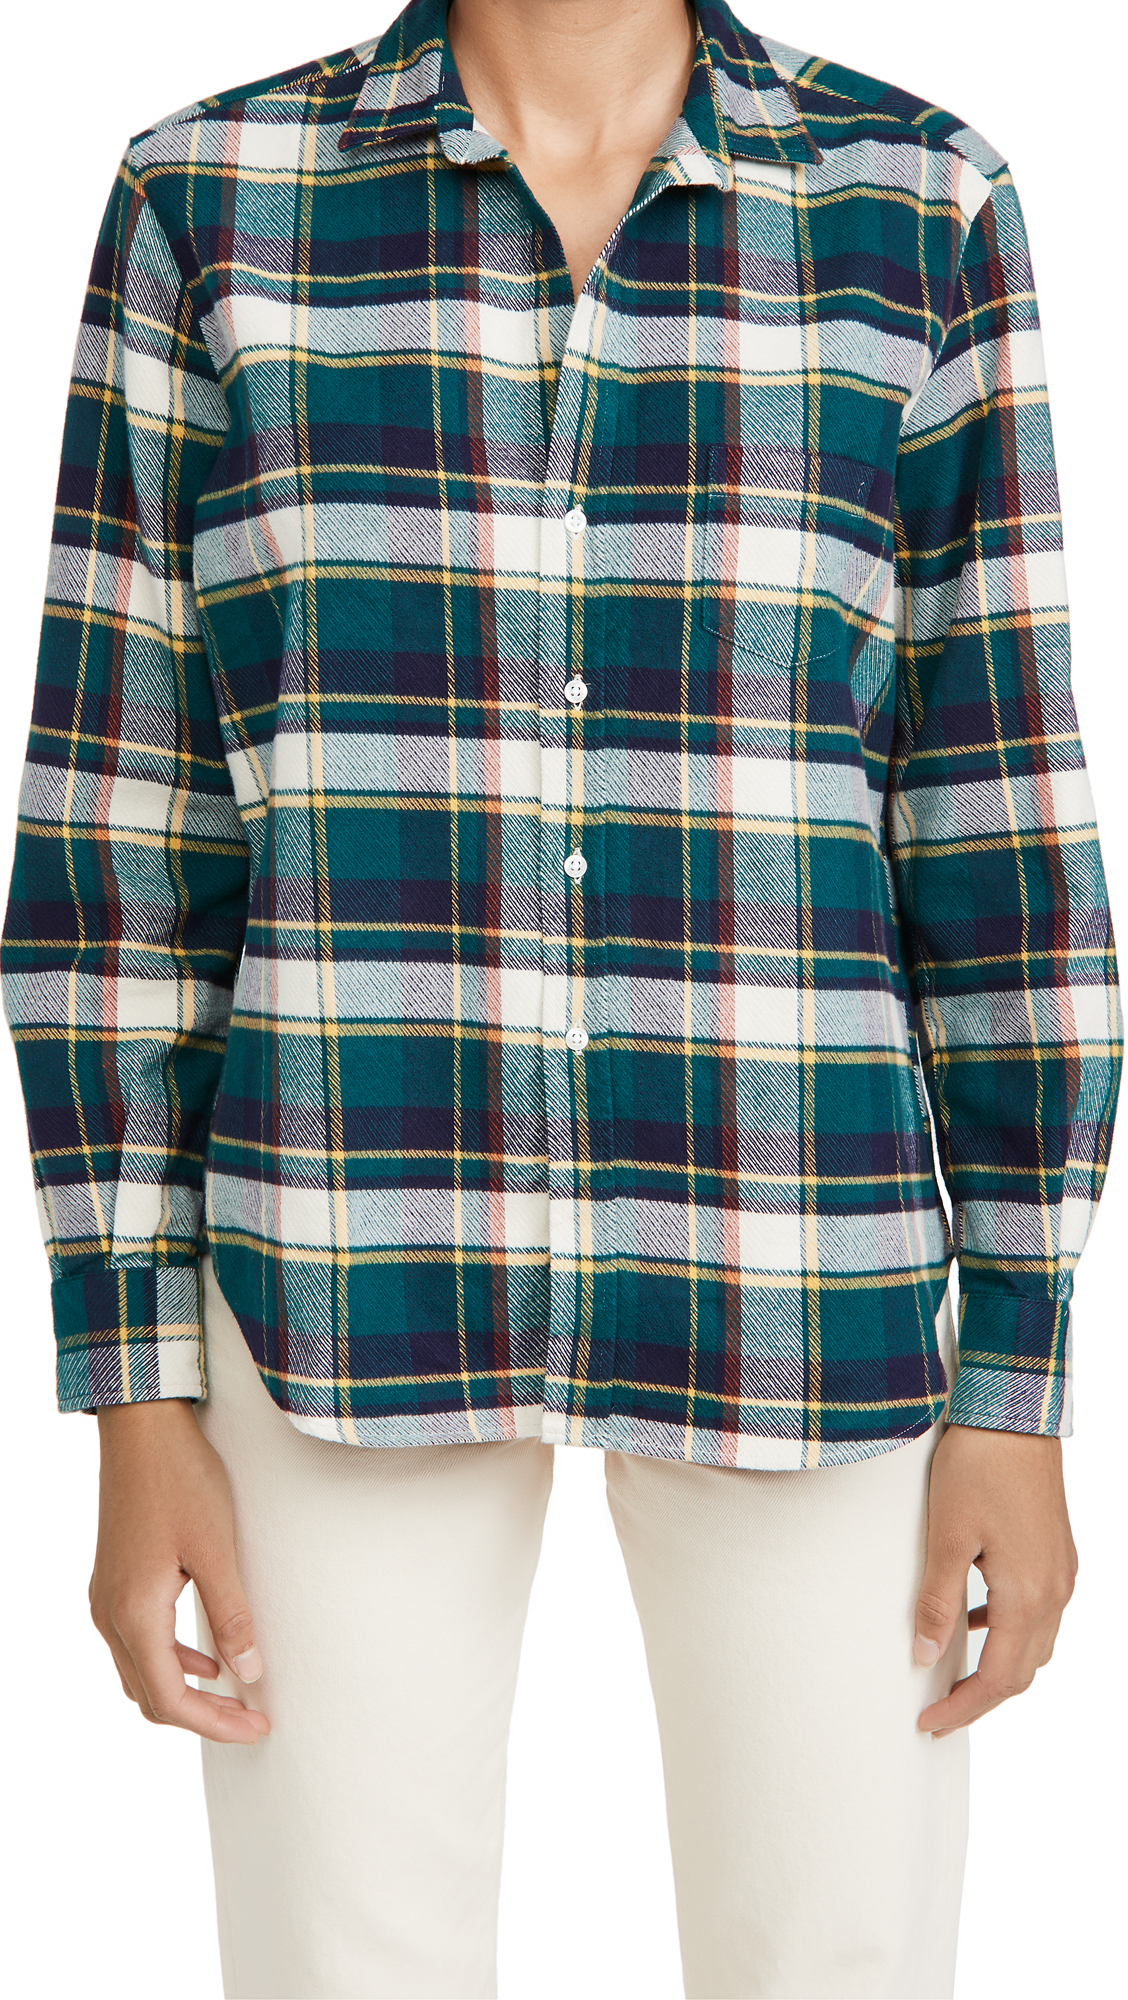 Frank & Eileen Women's Button Down Shirt